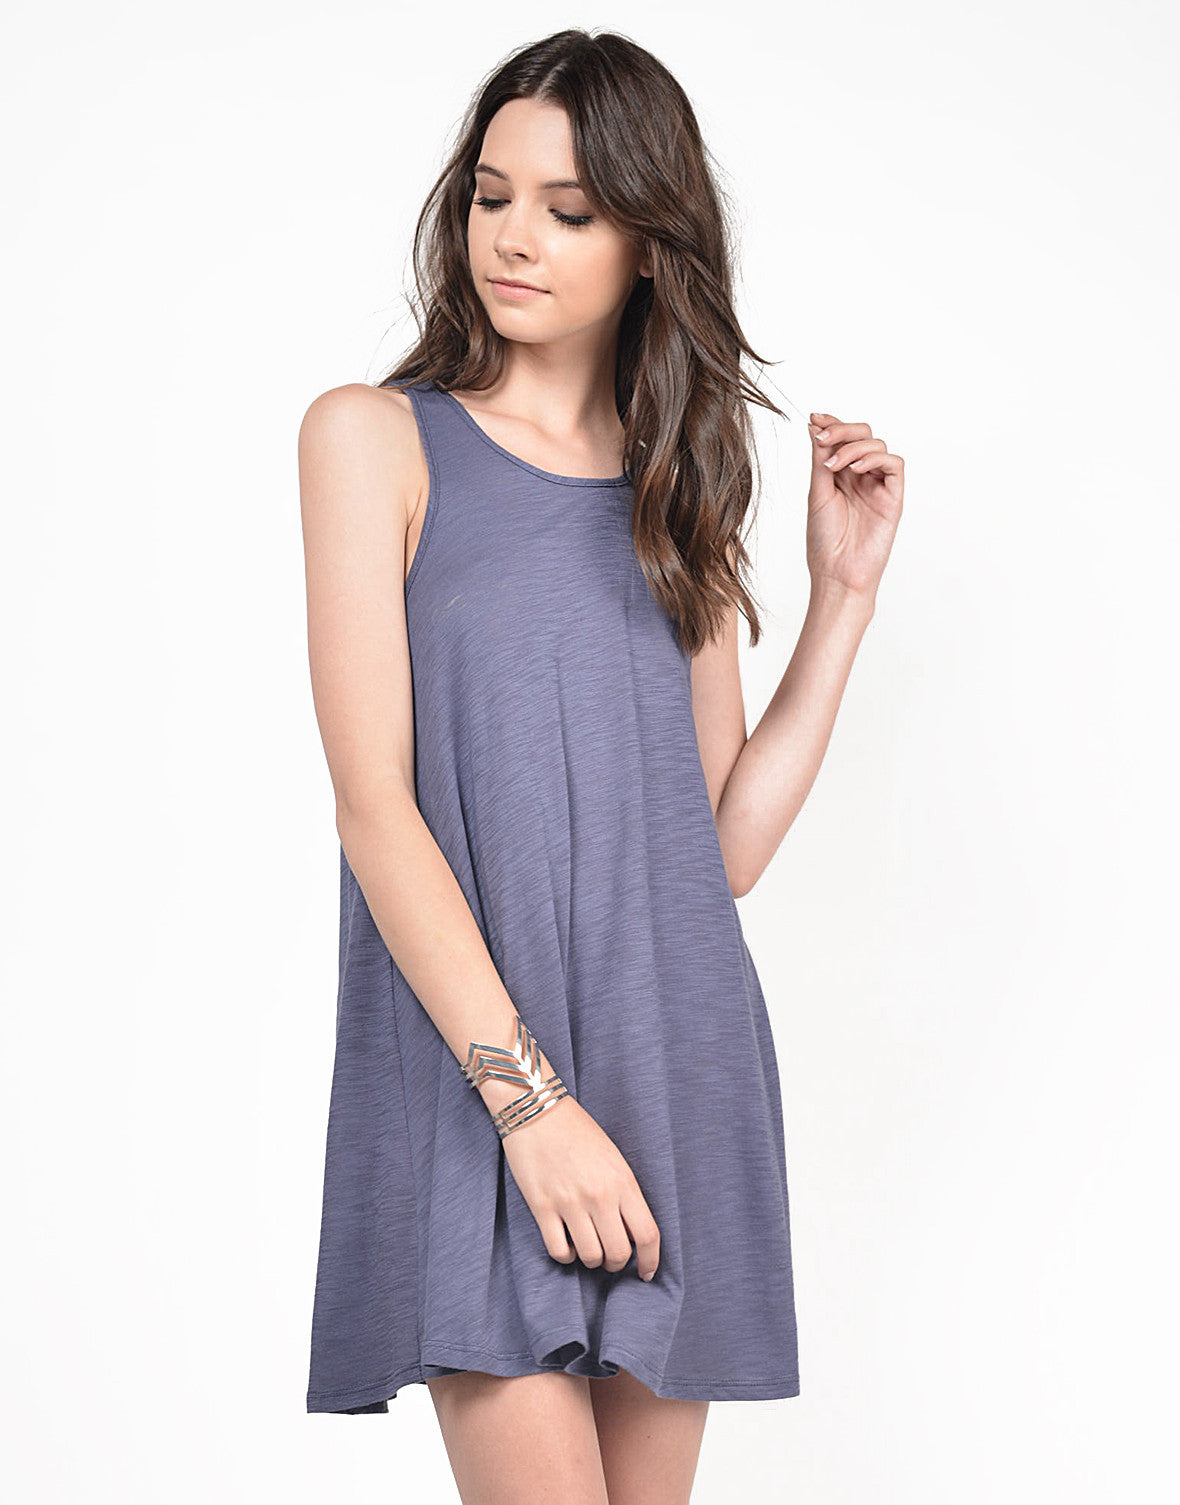 Front View of Simple Lightweight Sleeveless Dress